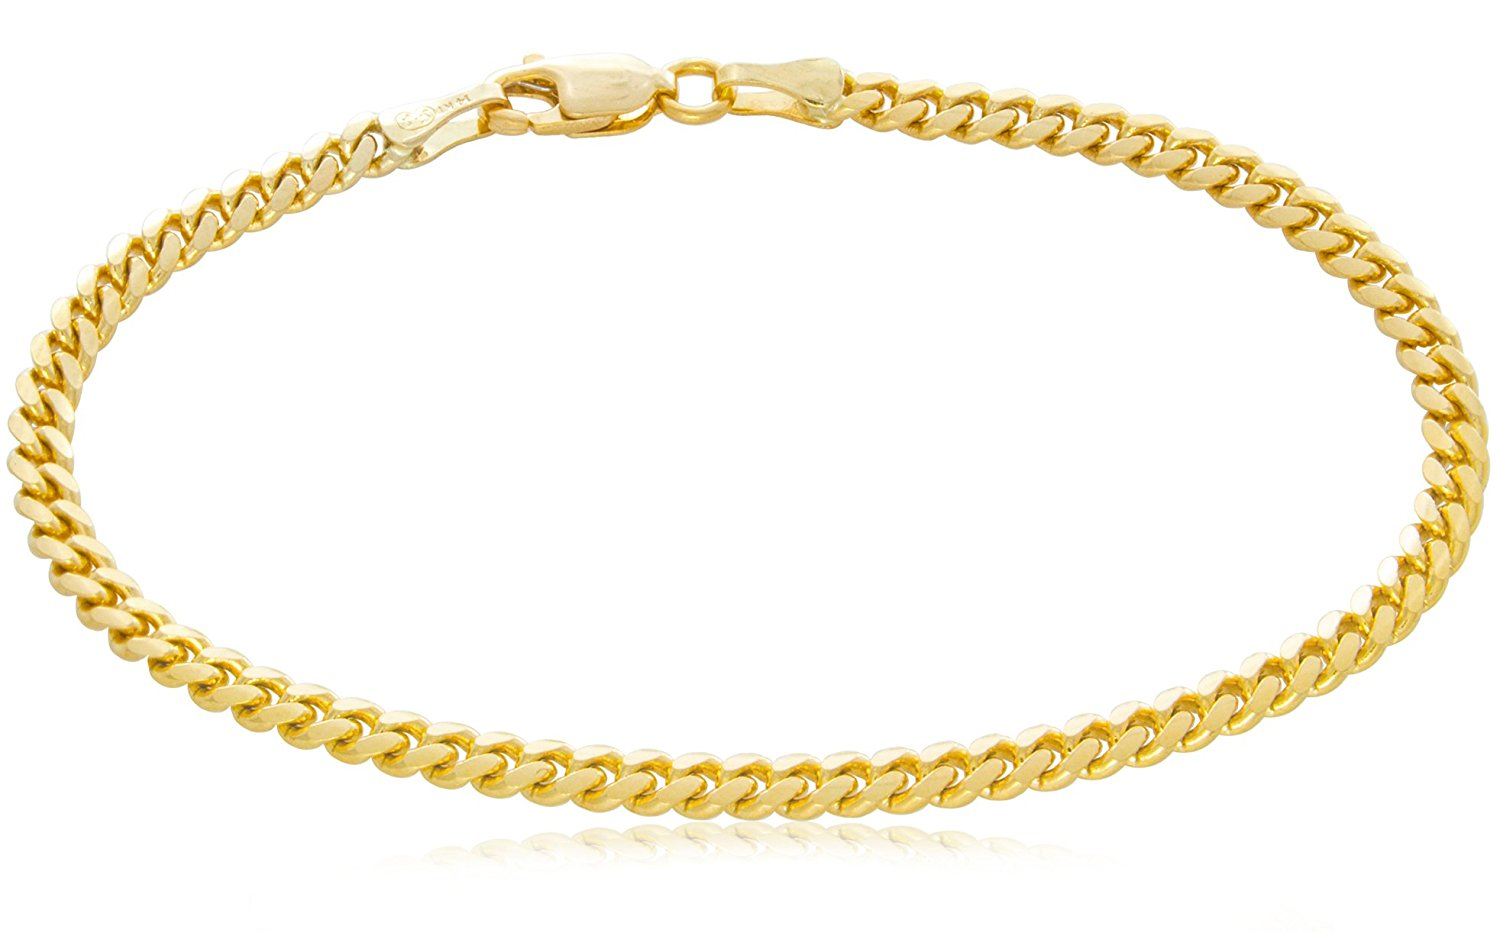 Trusted Jewelers Solid 14K Yellow Gold Miami Cuban 3.2mm Link Chain Bracelet | Mid-Weight Width Polished Finish | 7 – 8½""